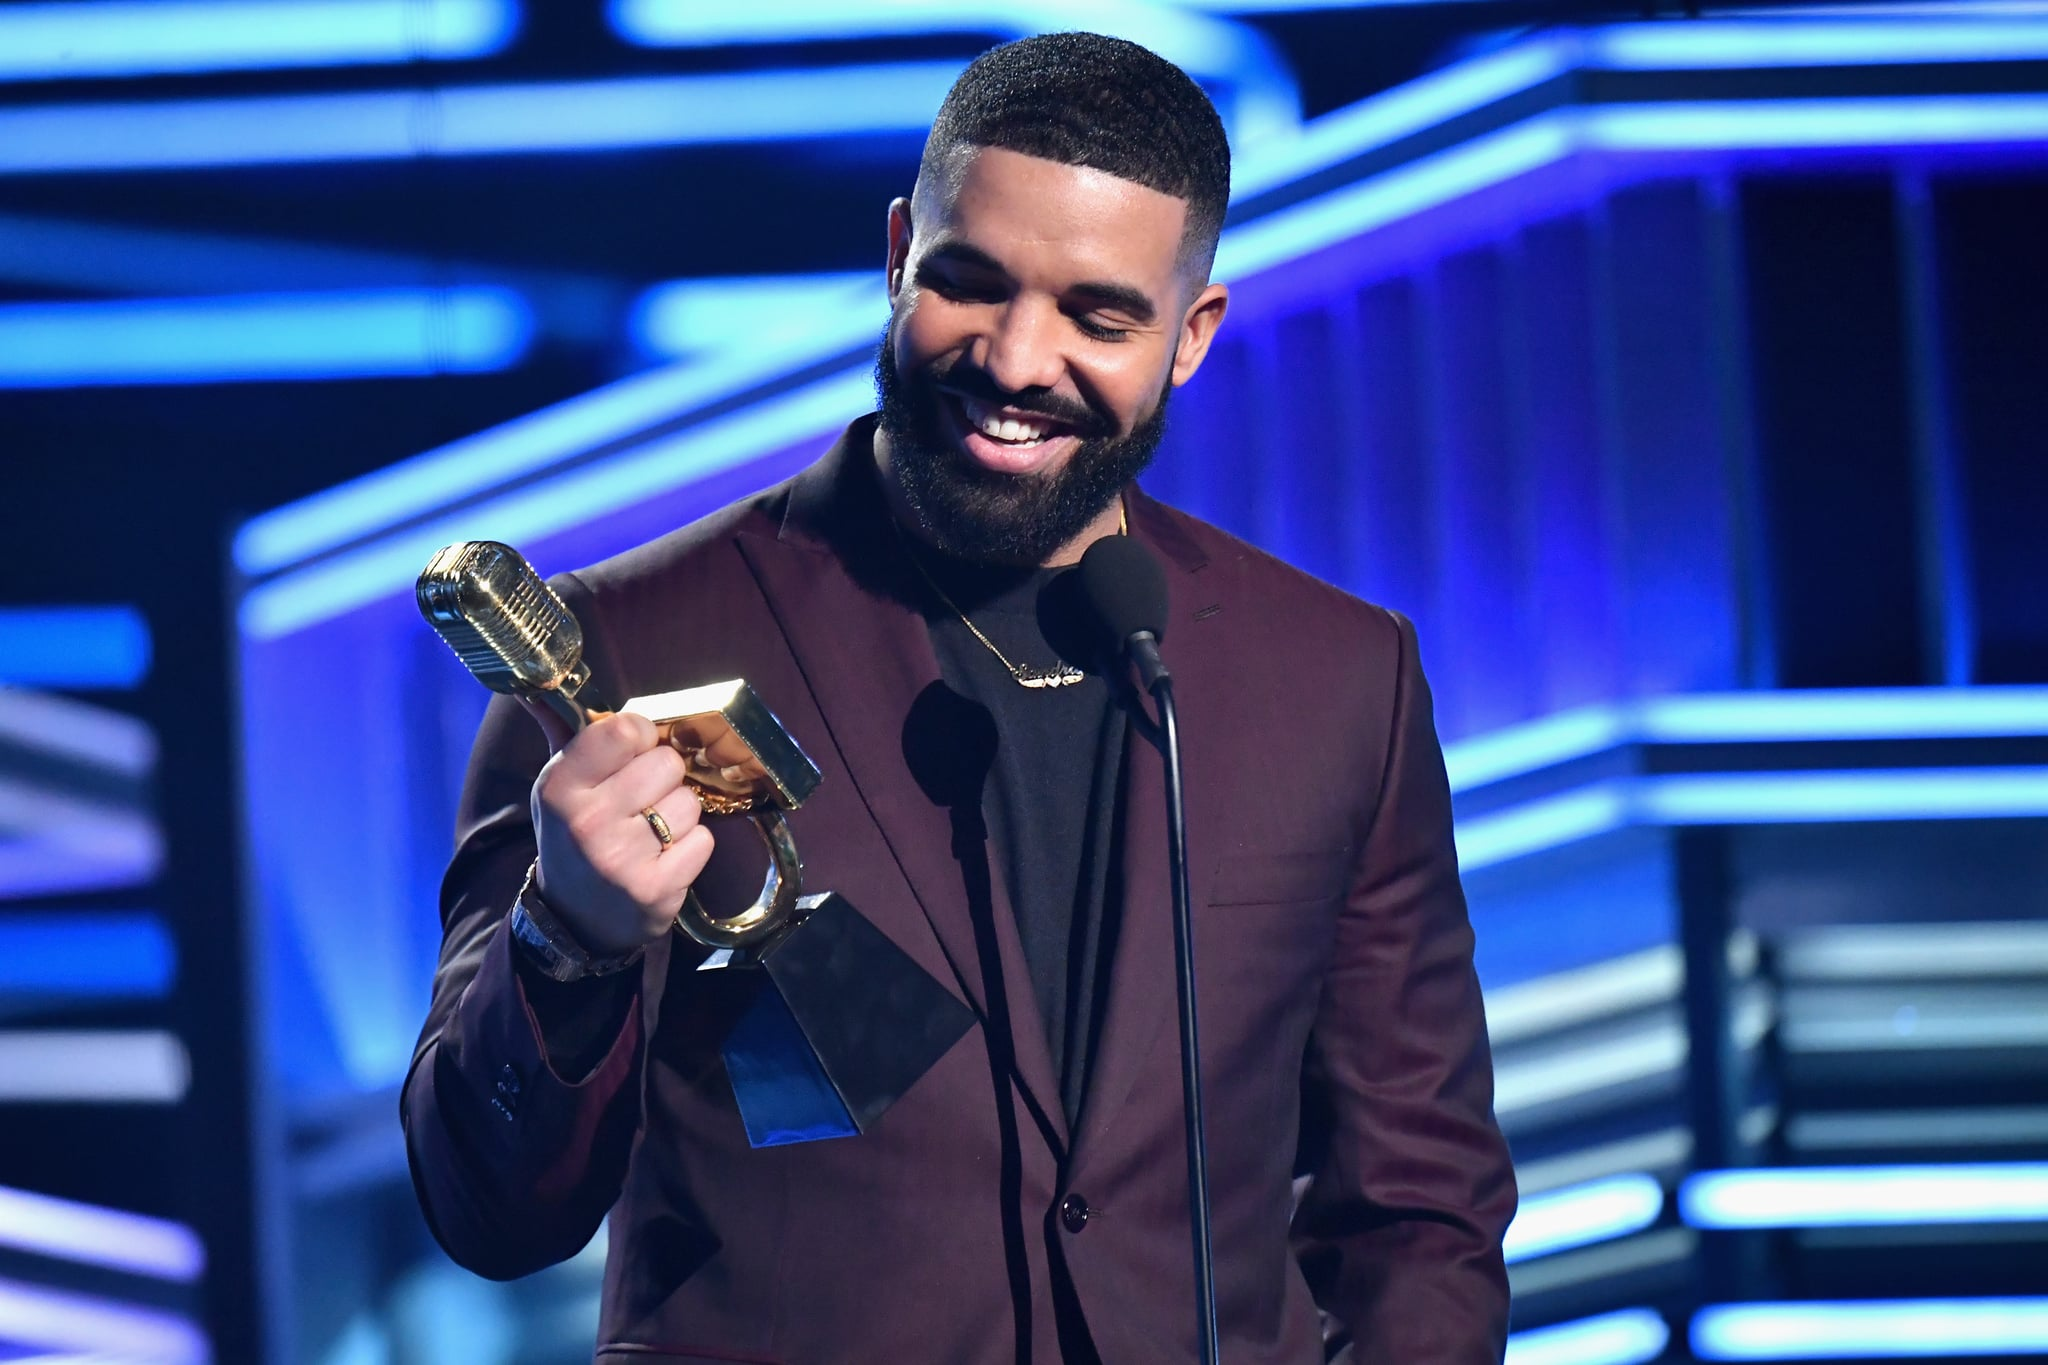 LAS VEGAS, NV - MAY 01:  Drake accepts Top Artist on stage during the 2019 Billboard Music Awards at MGM Grand Garden Arena on May 1, 2019 in Las Vegas, Nevada.  (Photo by Jeff Kravitz/FilmMagic for dcp)